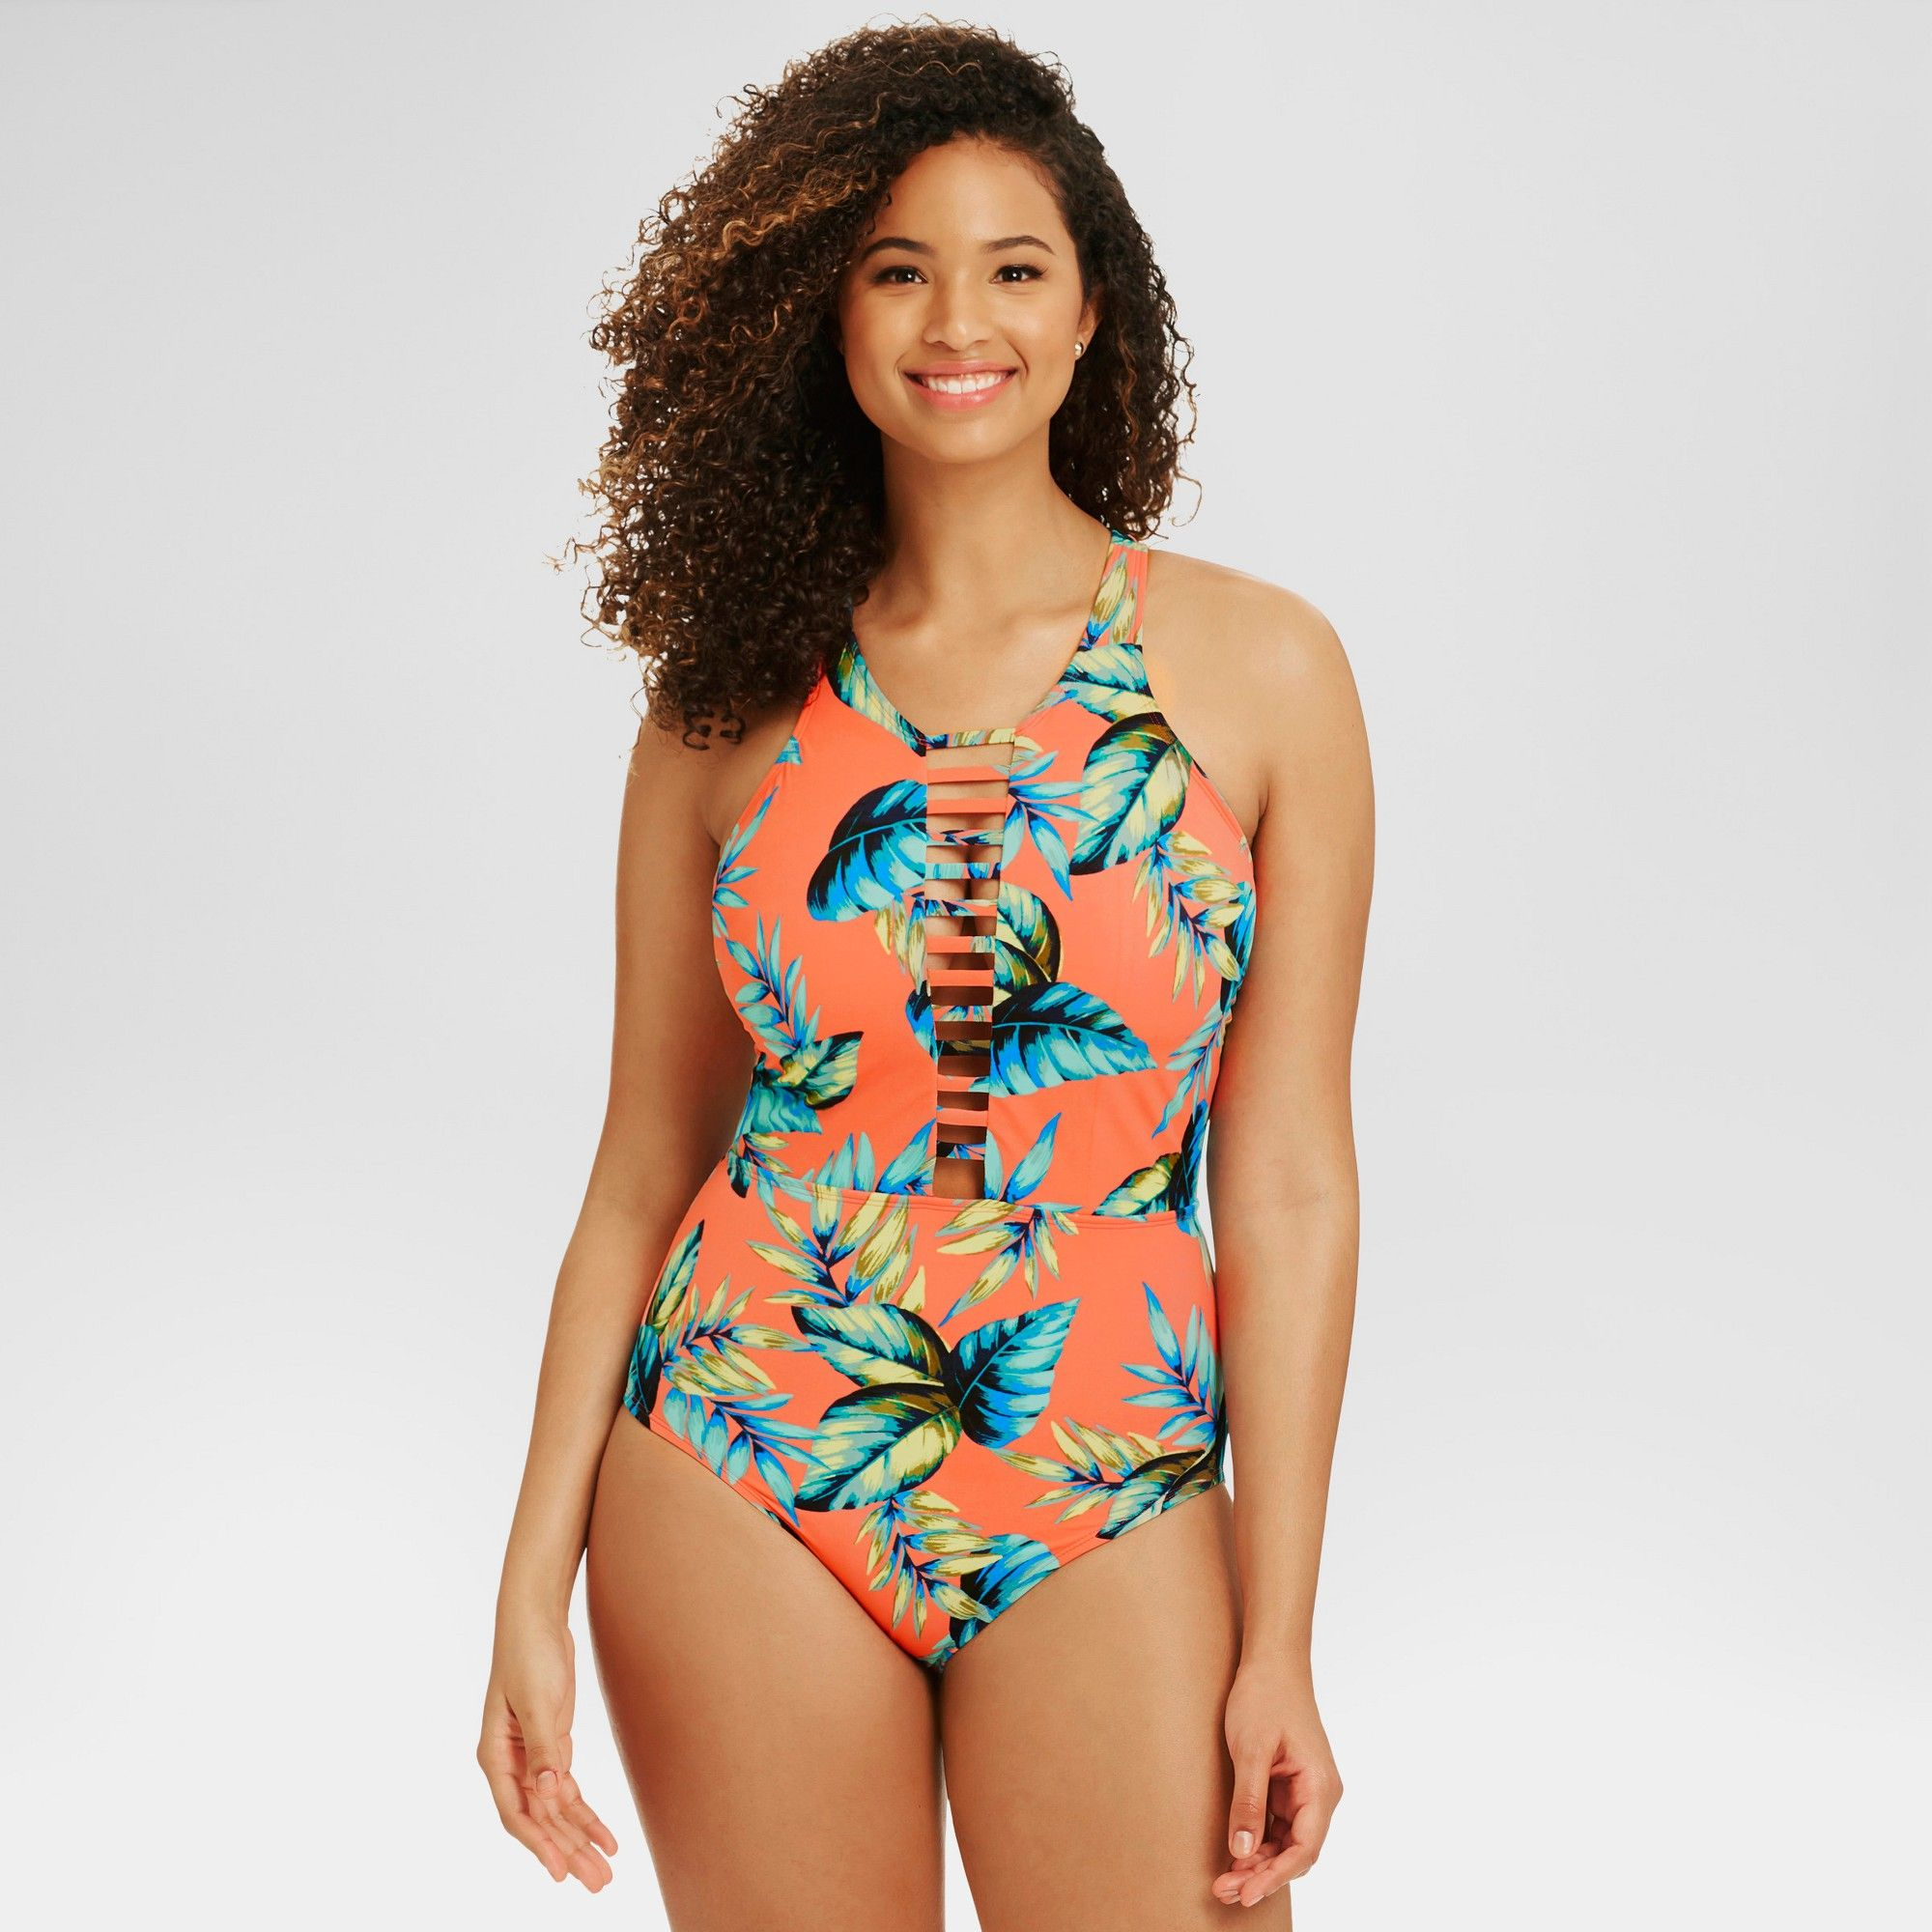 bd6d547b60 Beach Betty by Miracle Brands Women s Slimming Control Tropical High Neck  One Piece - Multi-Colored S